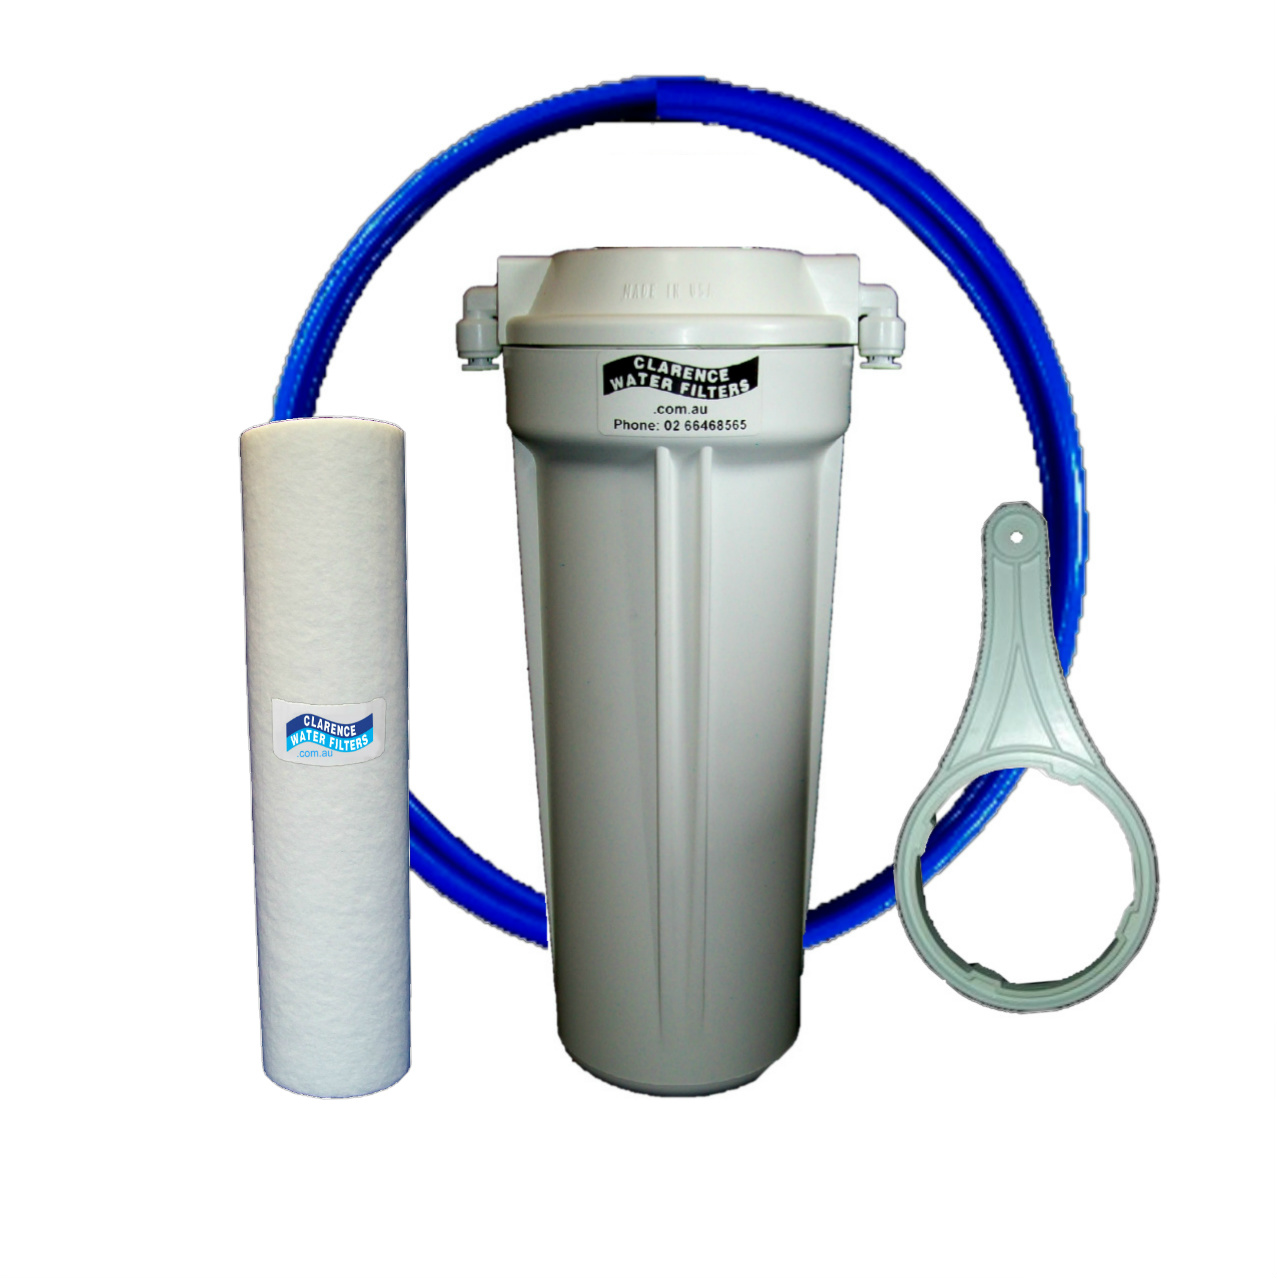 Line Water Filter Clarence Water Filters Australia 10 Inline Sediment Water